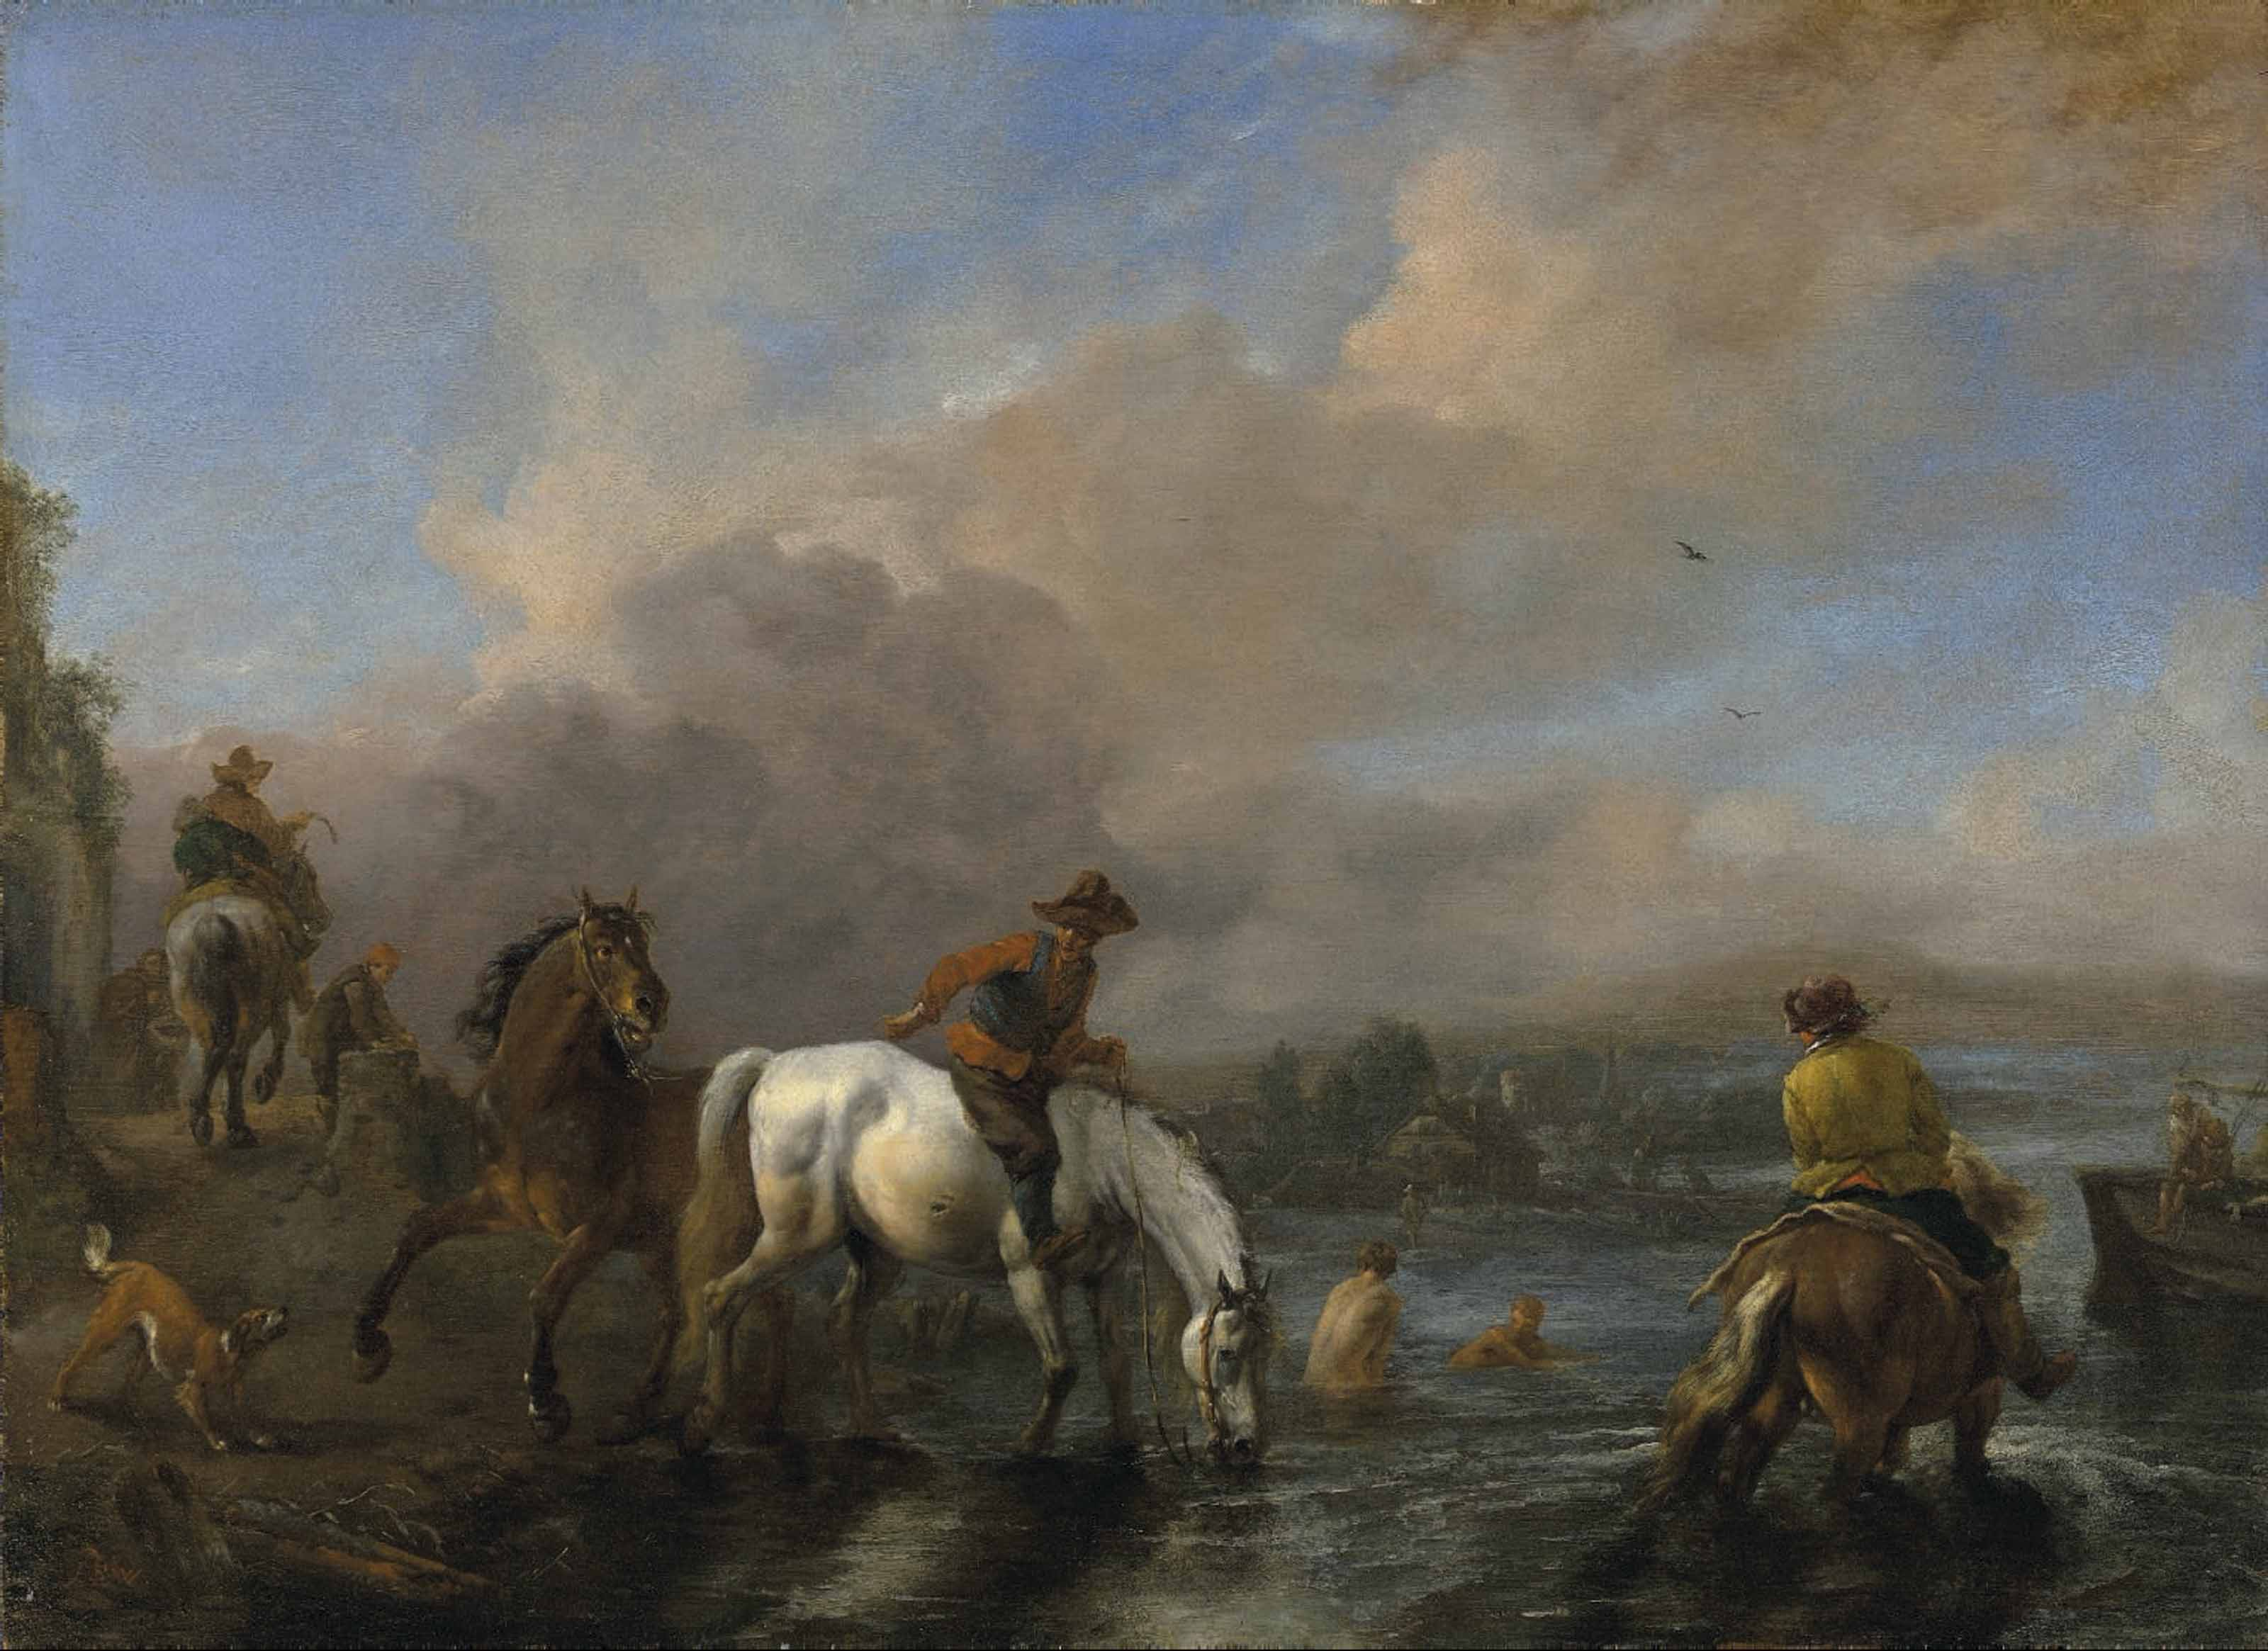 A river landscape with riders watering horses